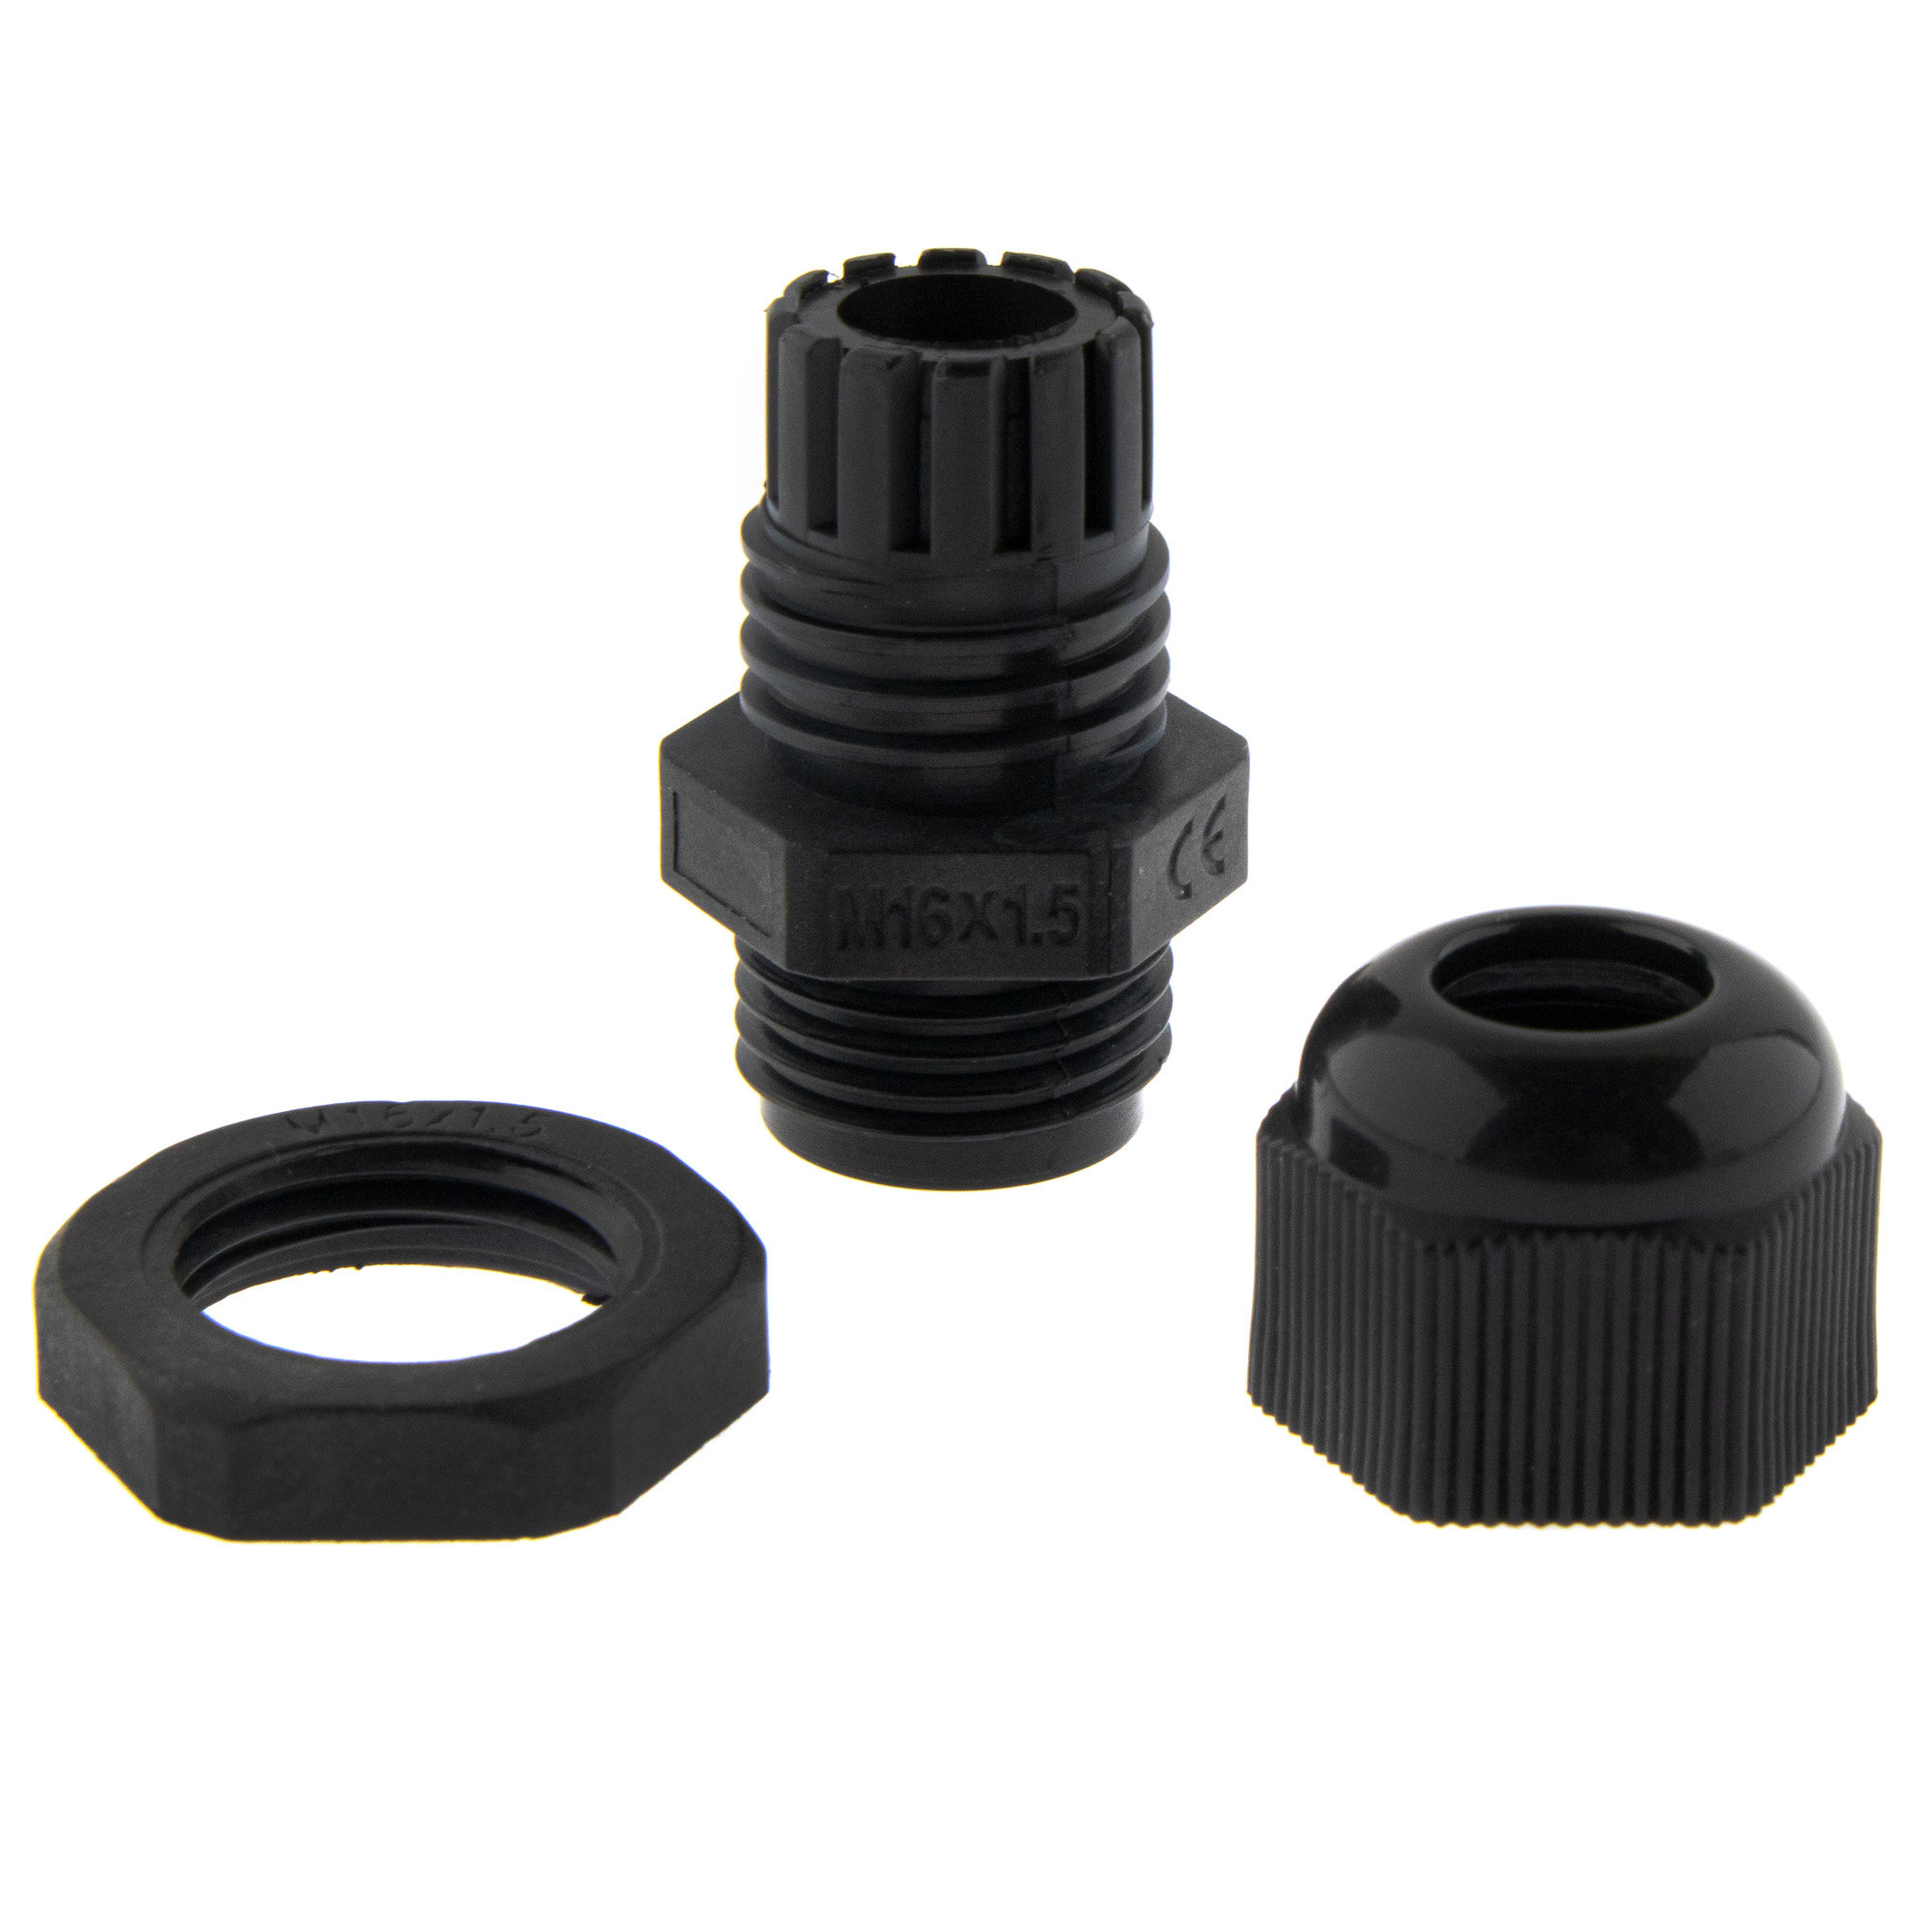 Cable gland M16 - black